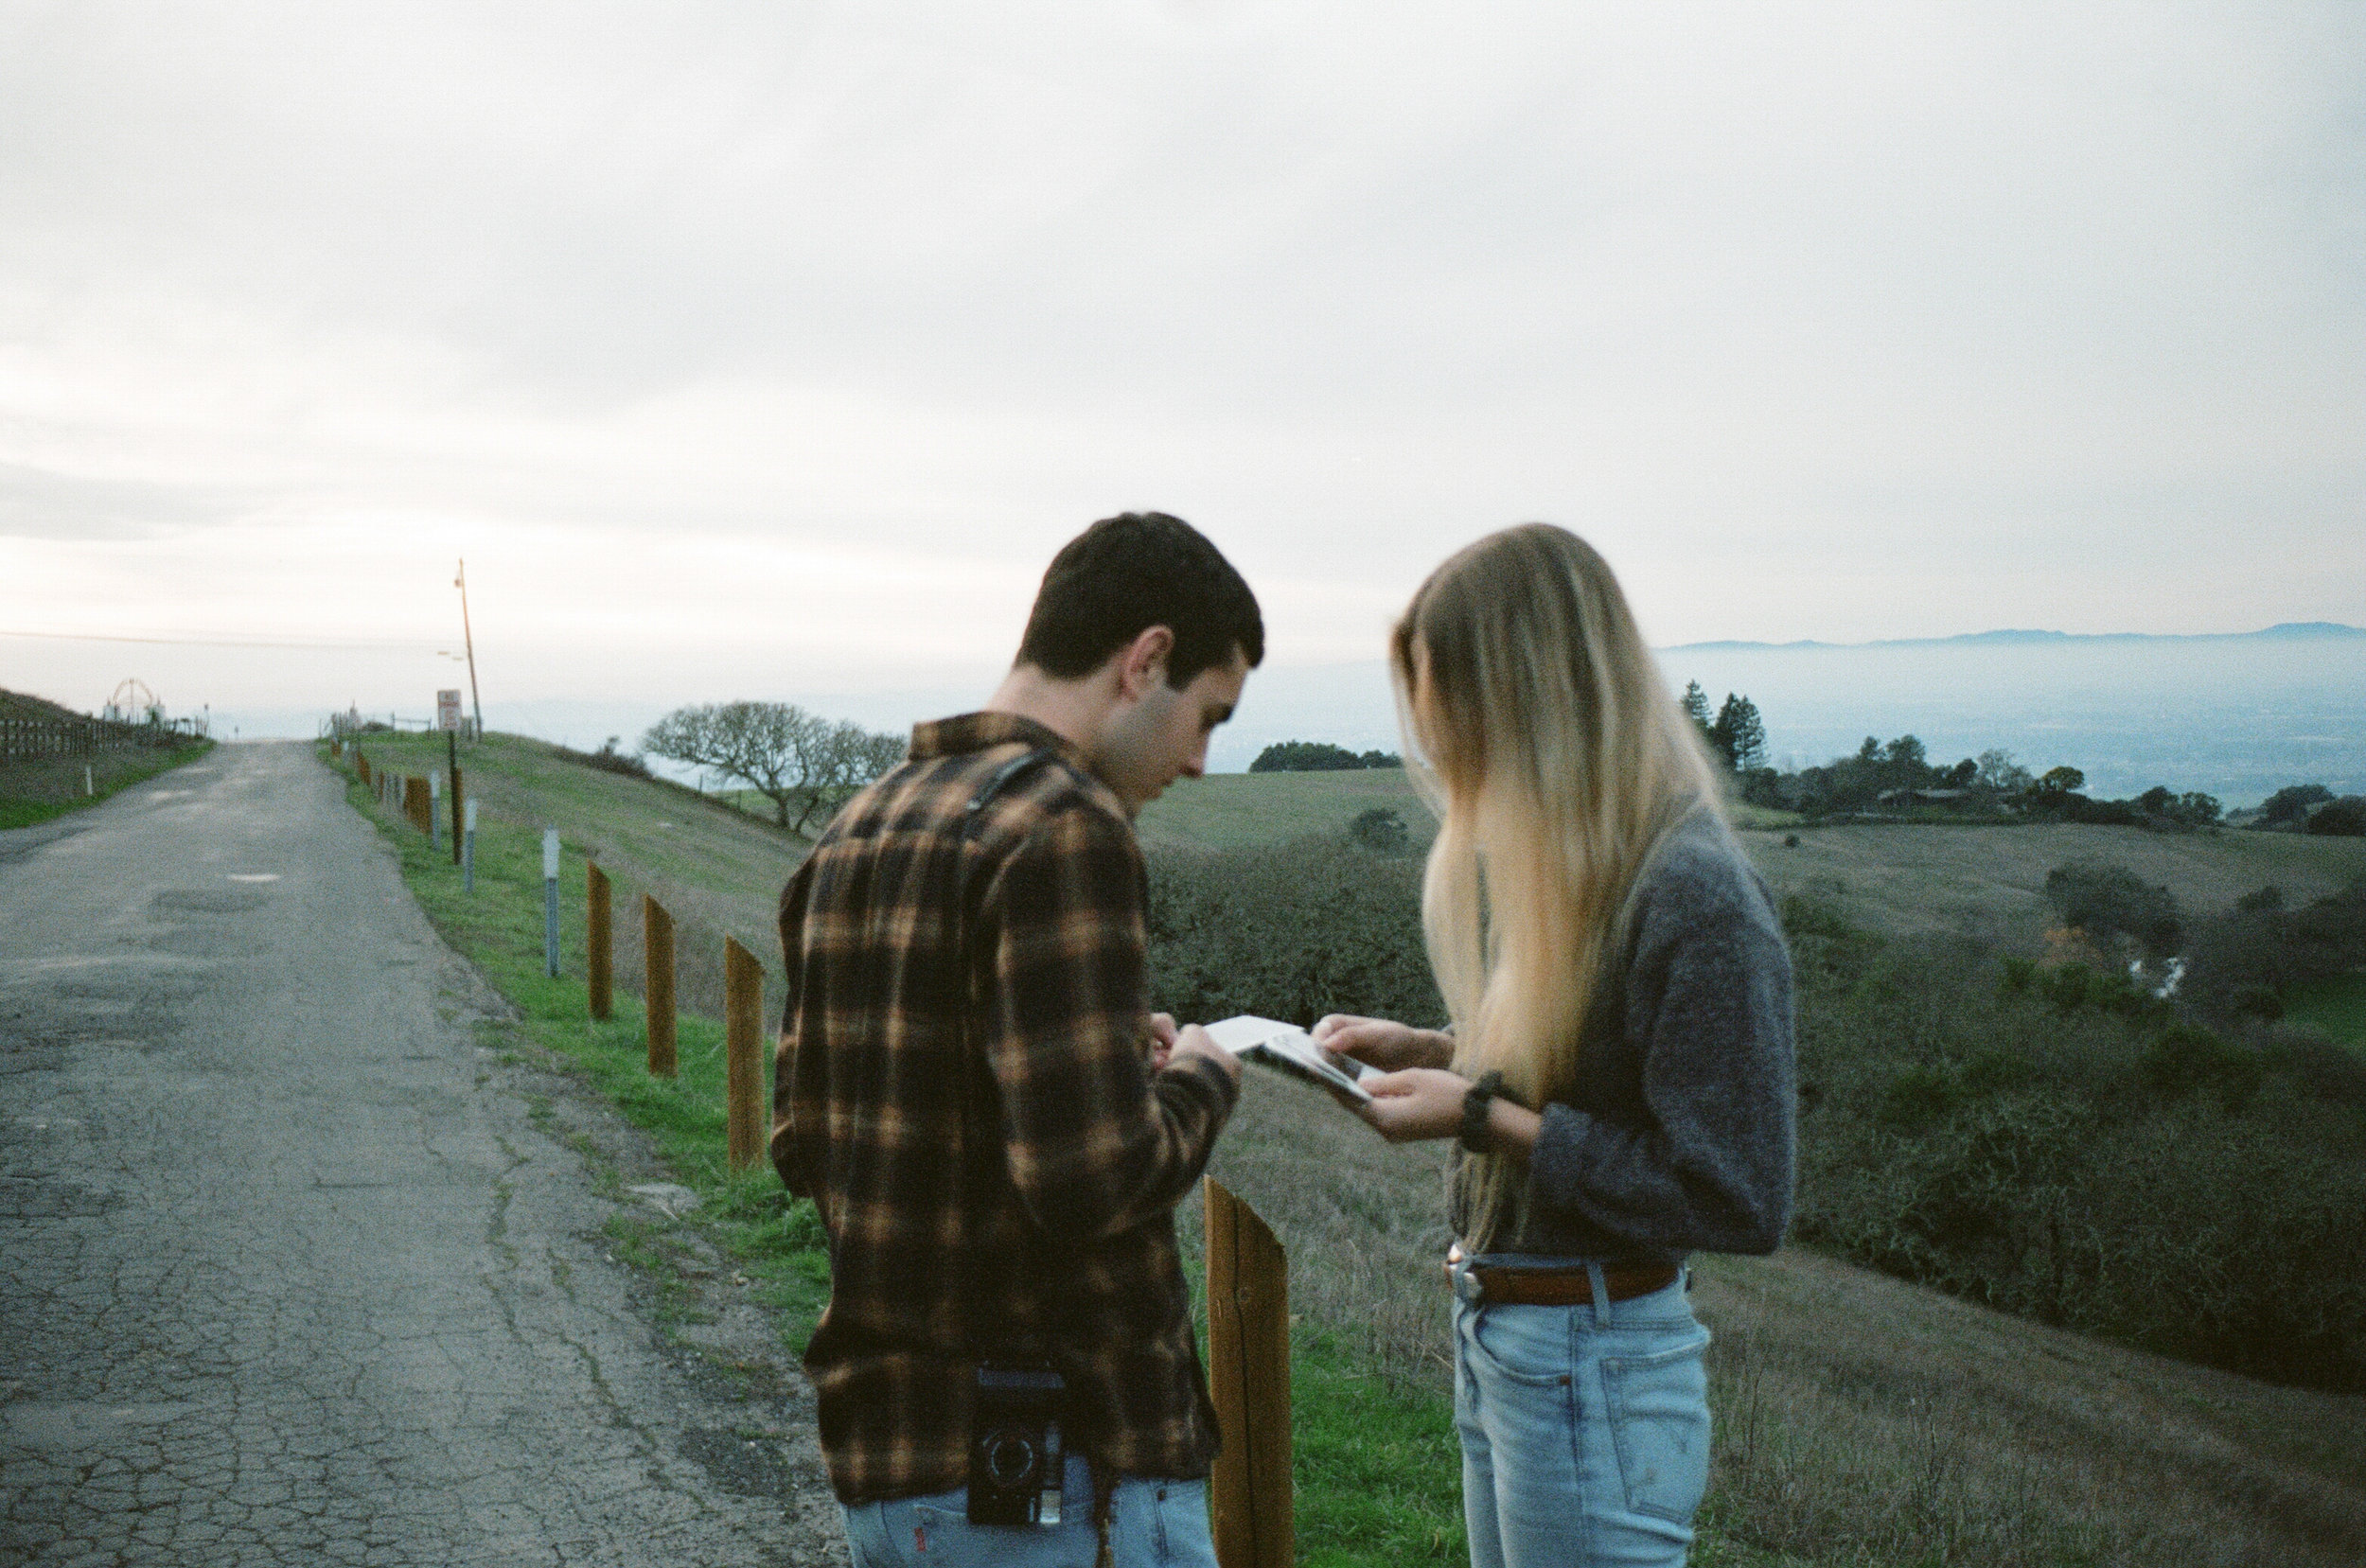 hannah&cole-california-film-jan2019-peytoncurry-000098780032.jpg